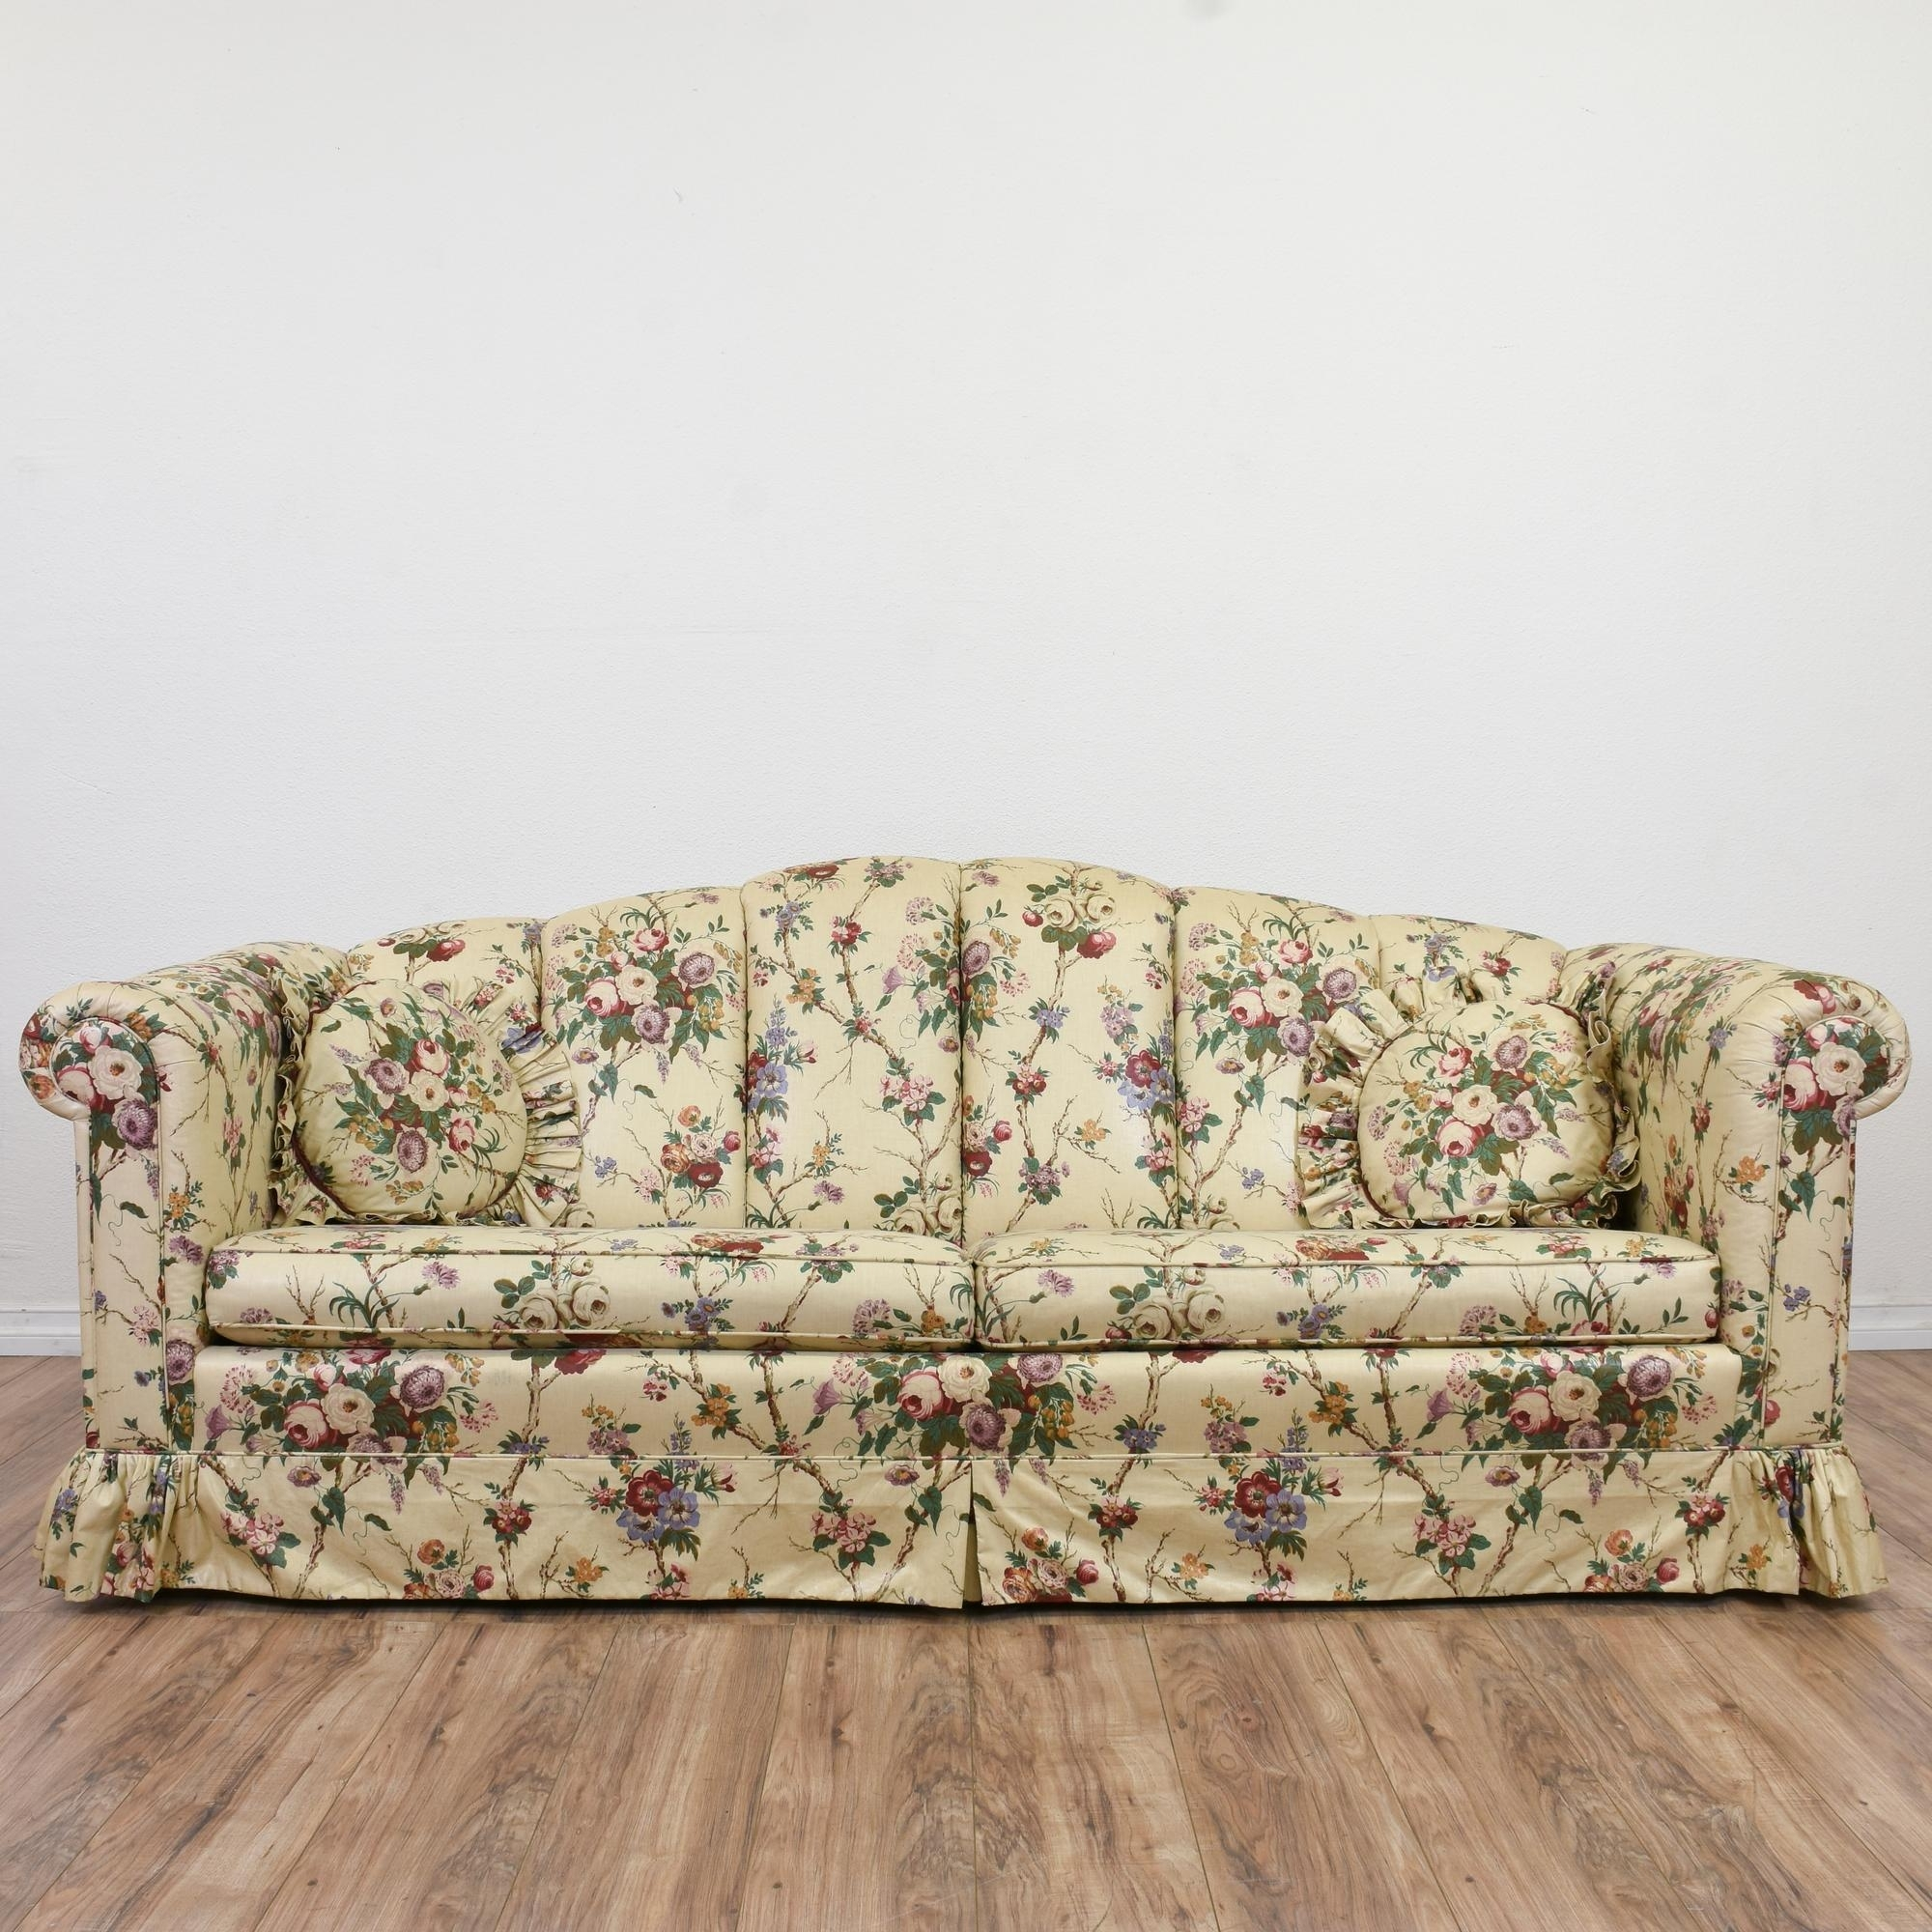 This Sofa Is Upholstered In A Durable Off White Beige, Pink And Pertaining To Popular Chintz Sofas (Gallery 2 of 20)